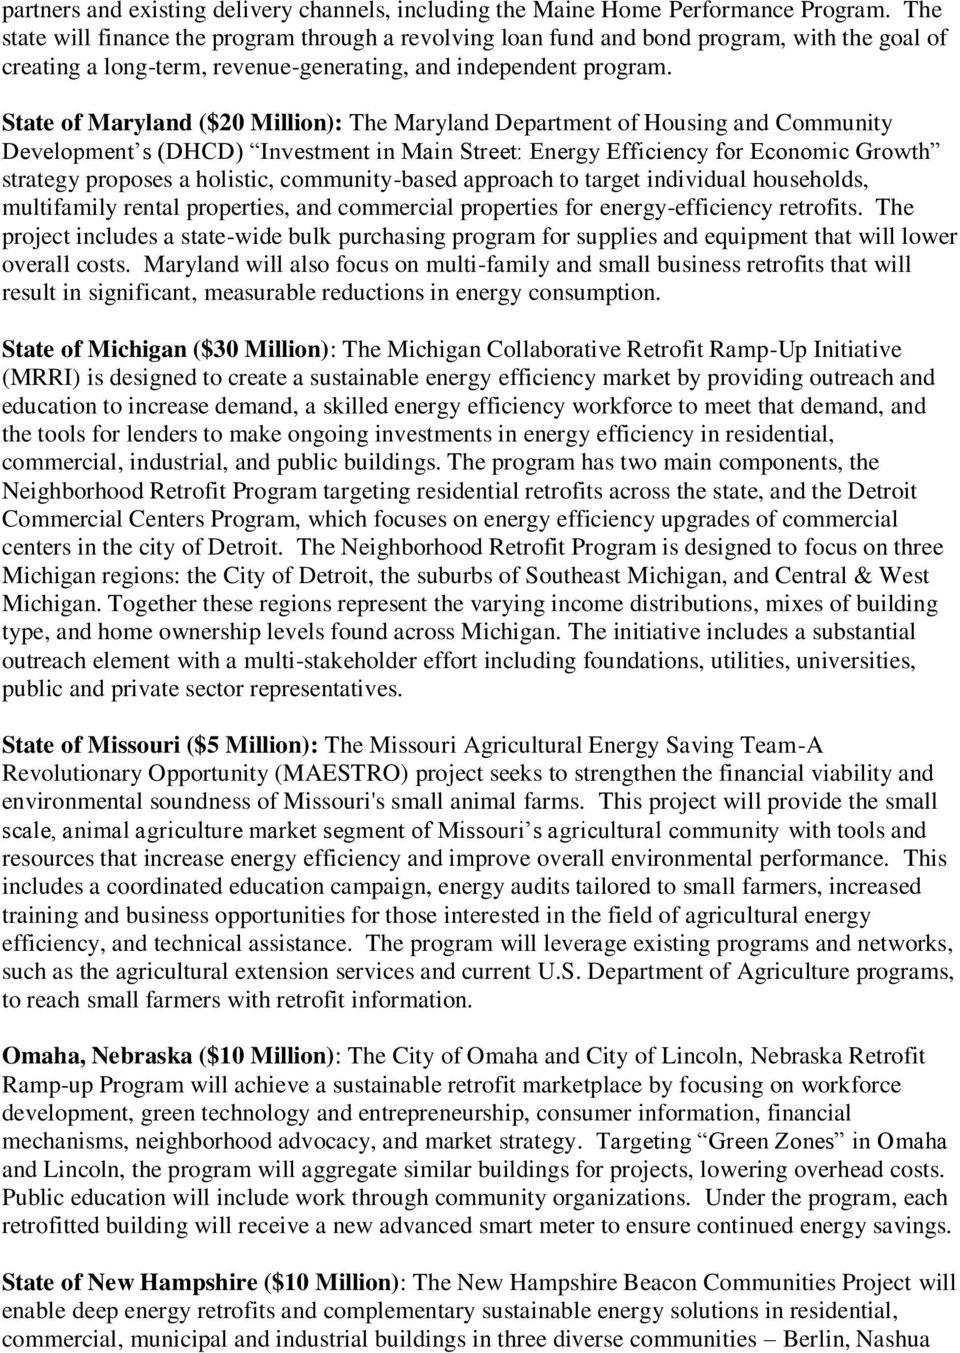 State of Maryland ($20 Million): The Maryland Department of Housing and Community Development s (DHCD) Investment in Main Street: Energy Efficiency for Economic Growth strategy proposes a holistic,